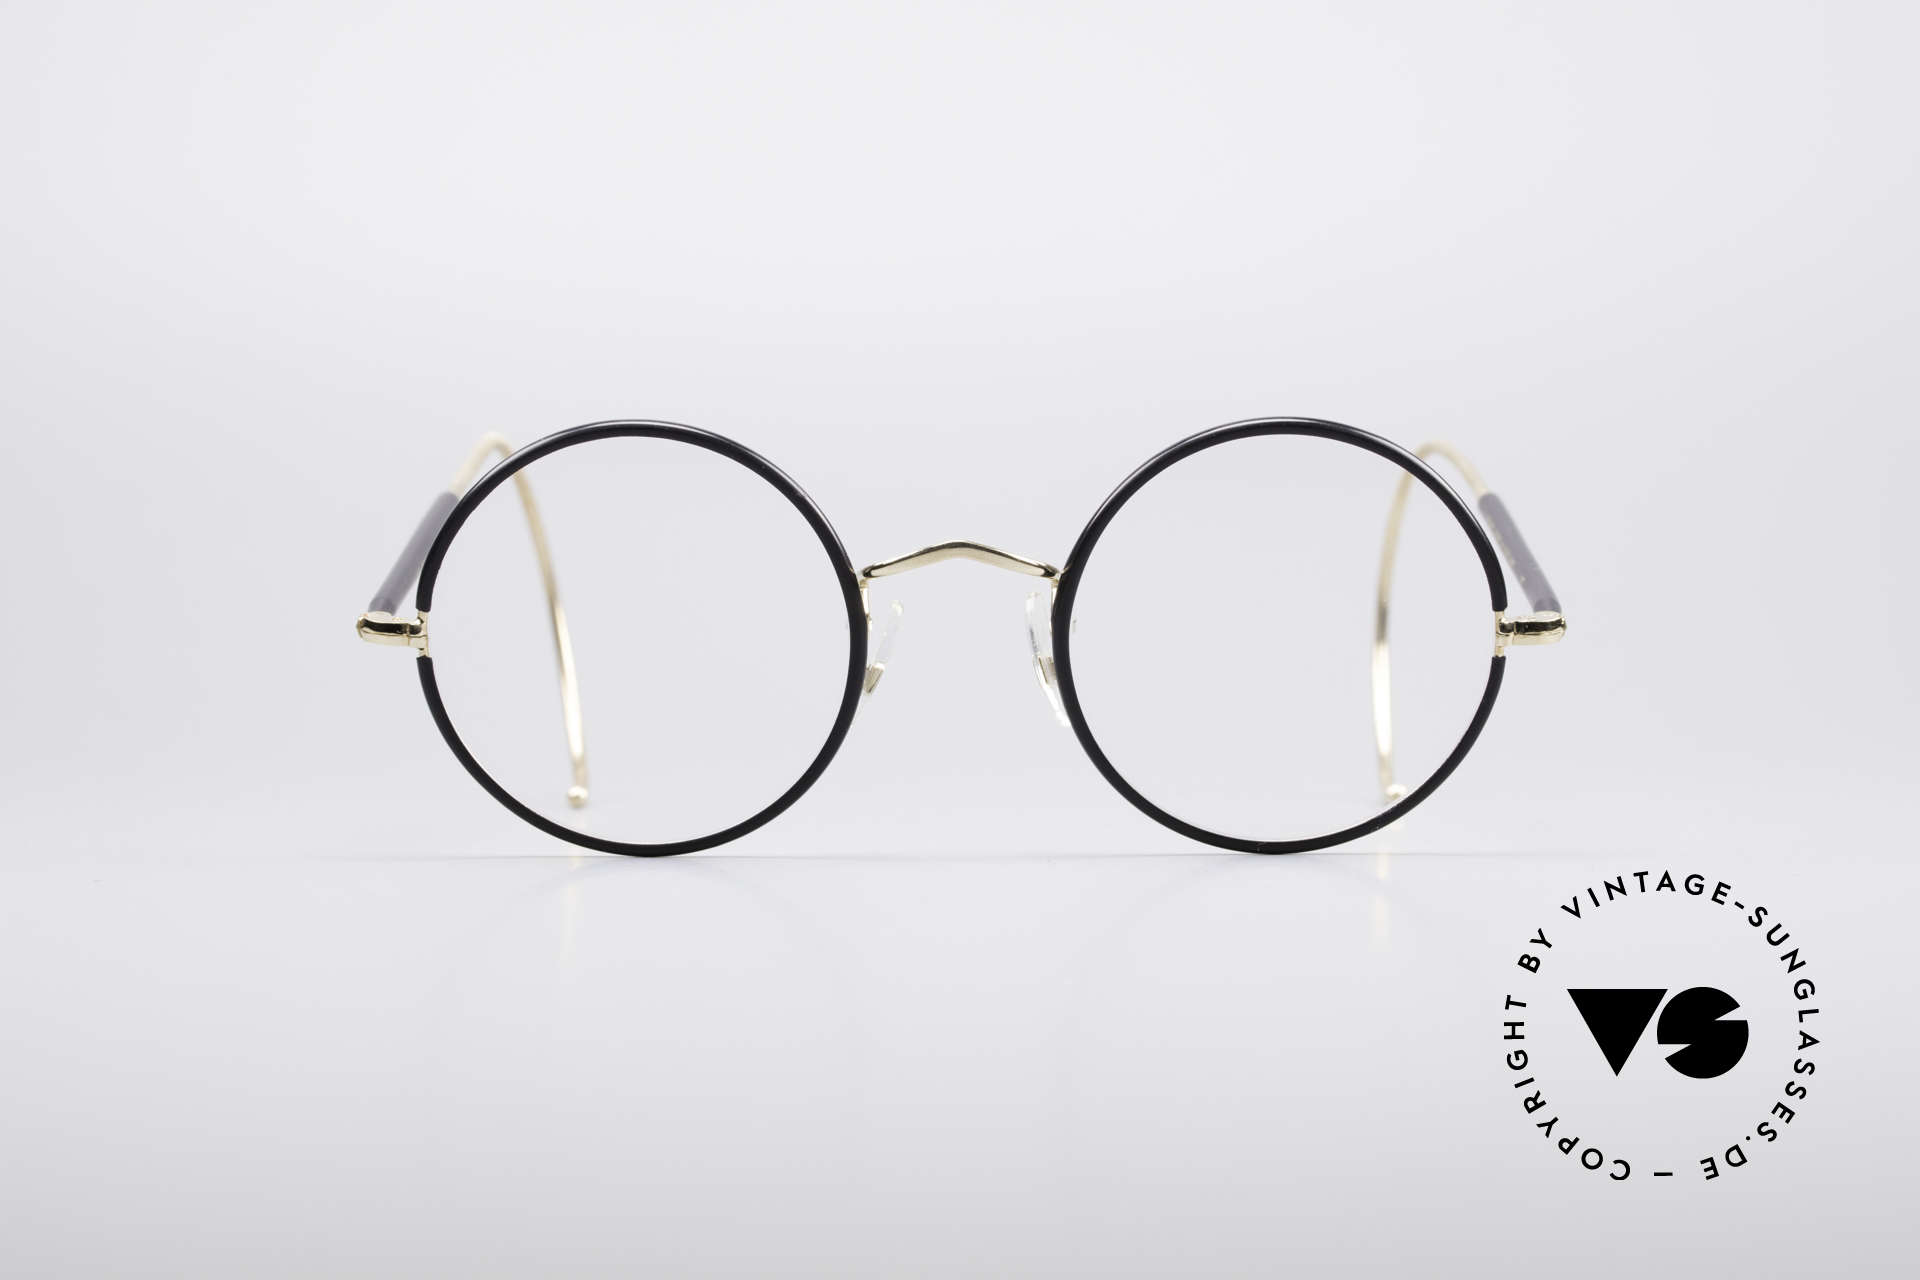 Savile Row Round 47/22 Harry Potter Glasses, timeless round vintage eyeglasses from the 1980's, Made for Men